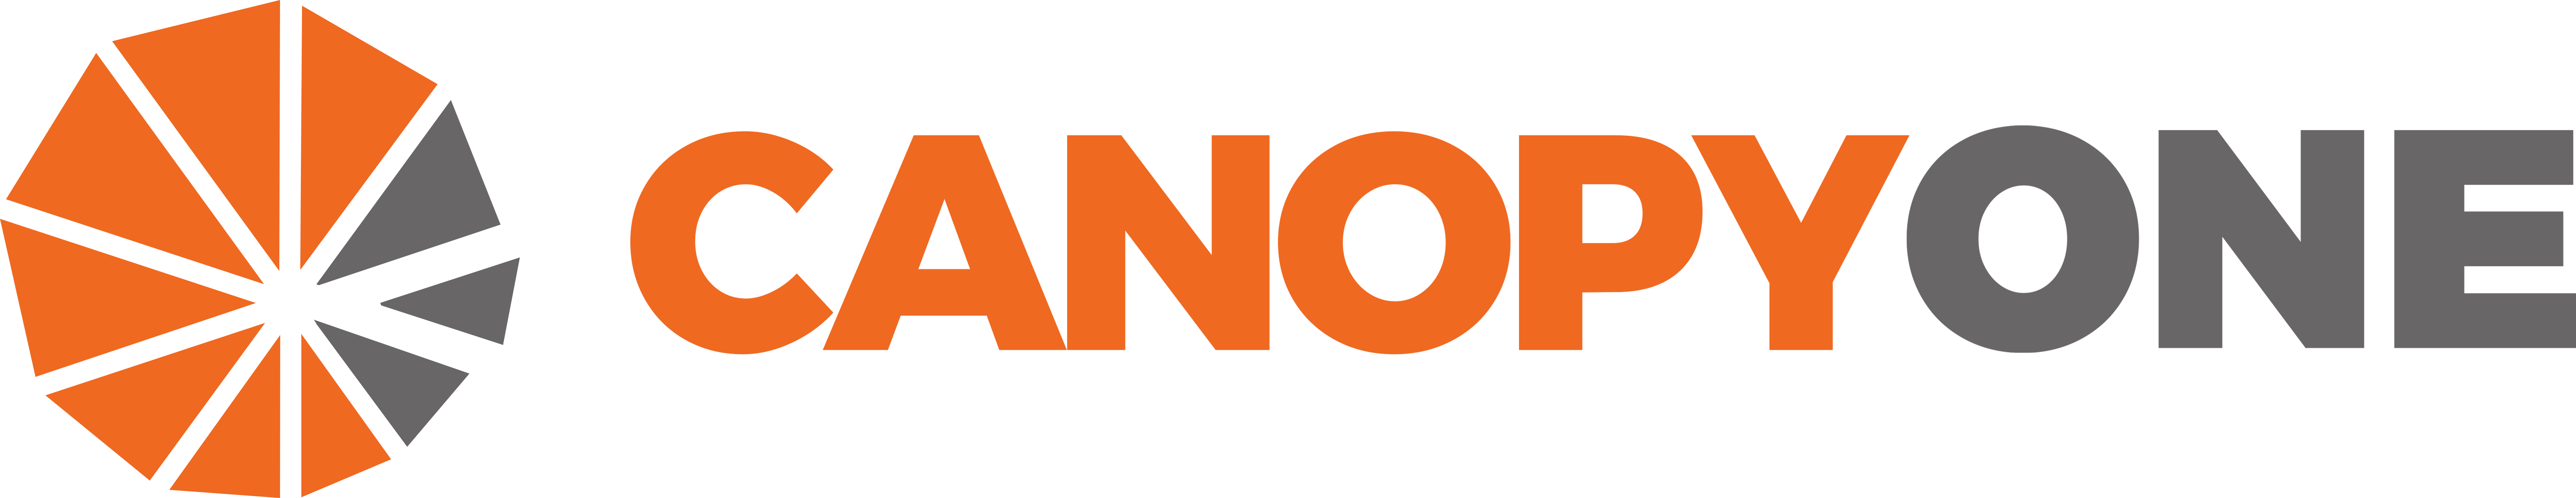 Canopy One Solutions logo